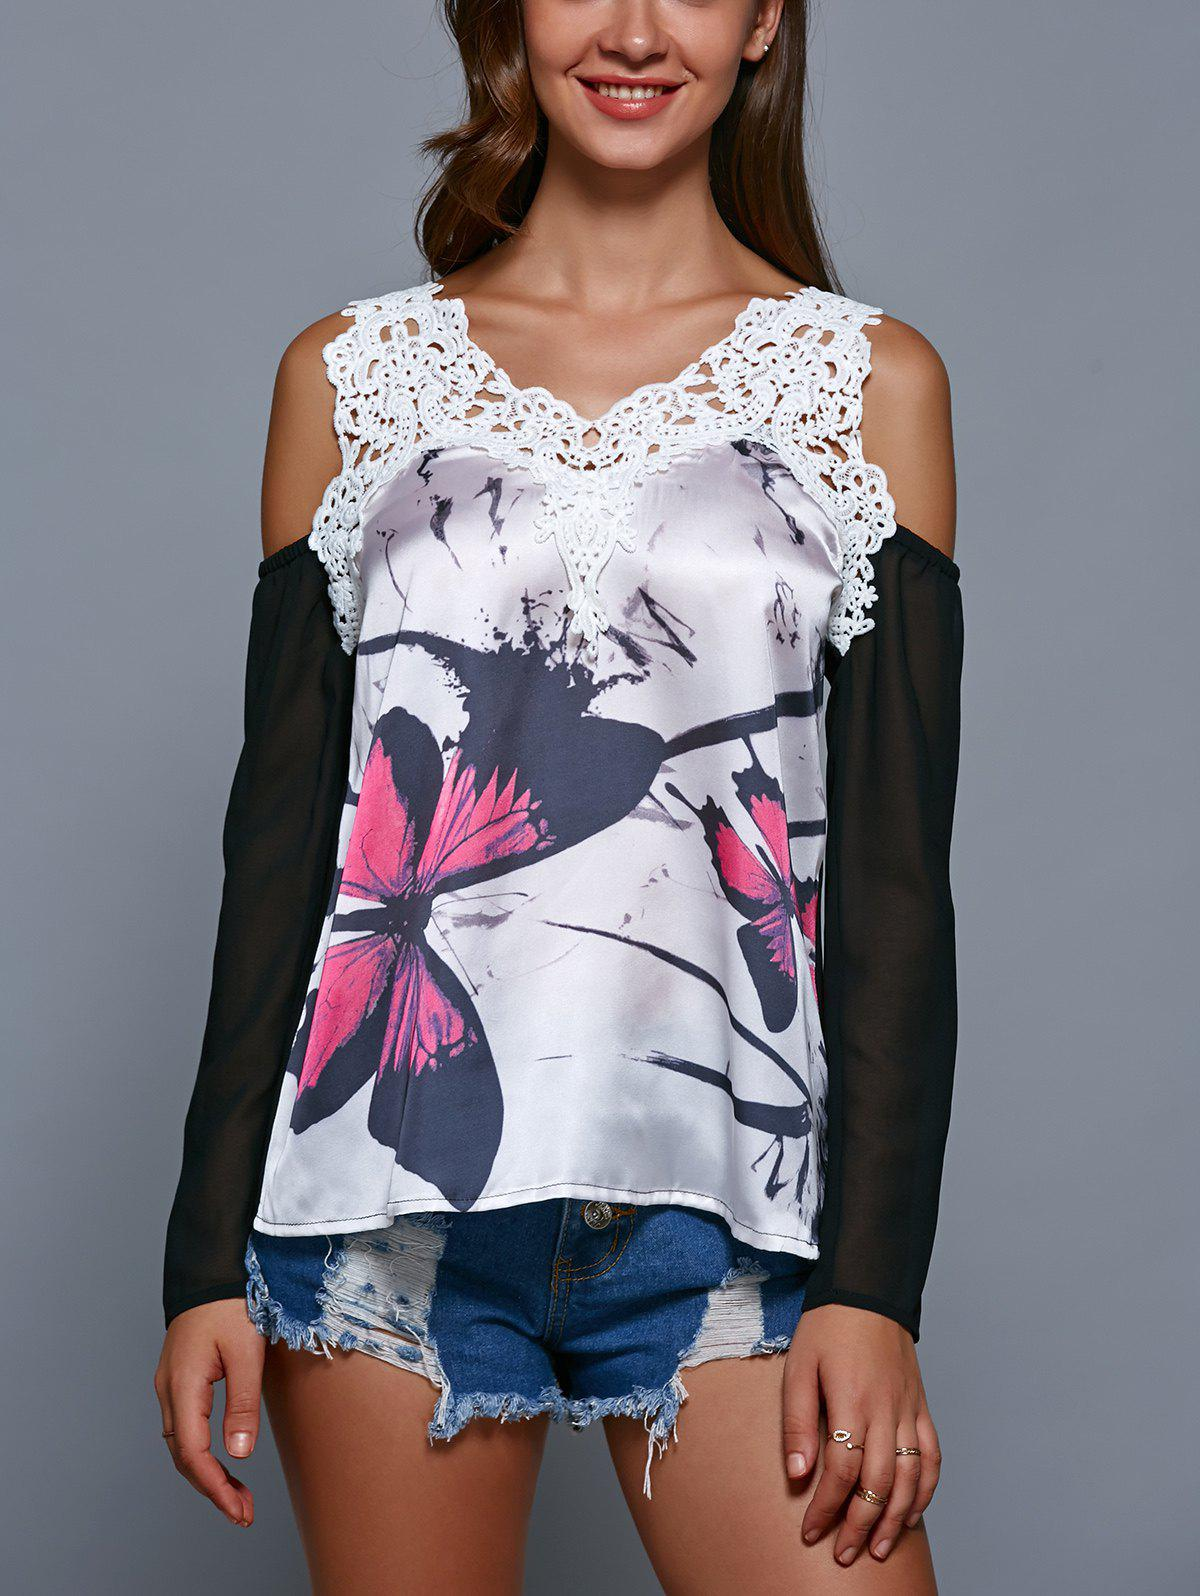 Lace Splicing Hollow Out Print T-Shirt - WHITE/BLACK S